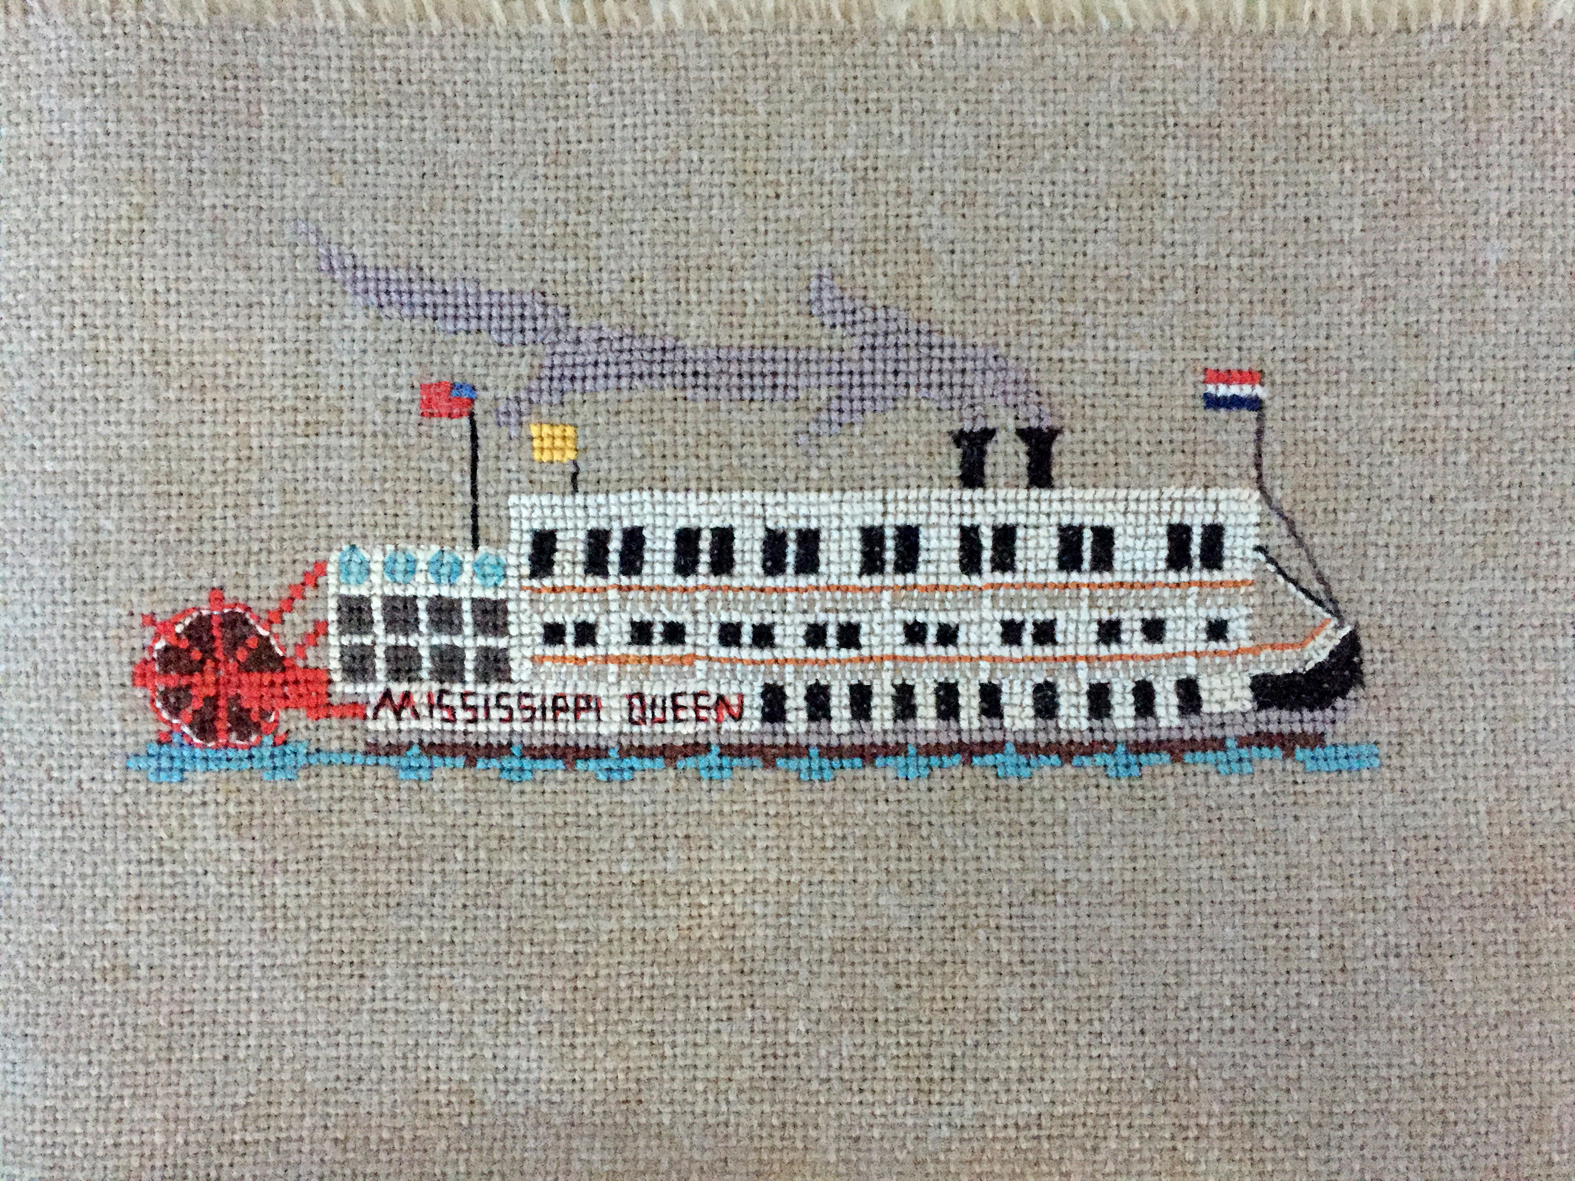 Mississippi Queen, hand stitched by Ms. Tremaine